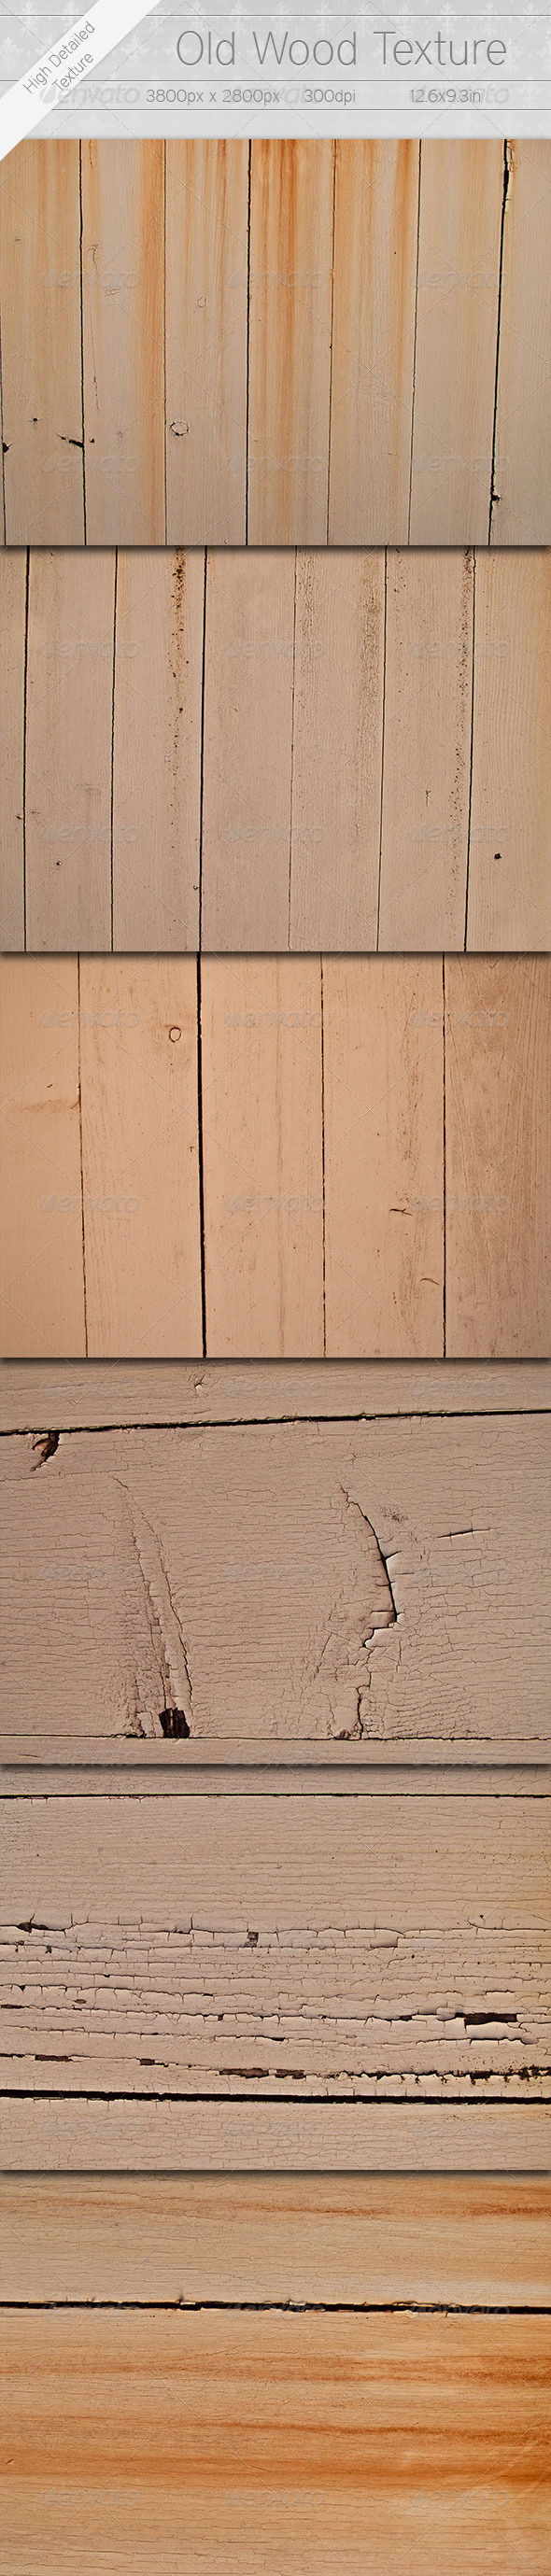 Old Wood Textures - Miscellaneous Textures / Fills / Patterns